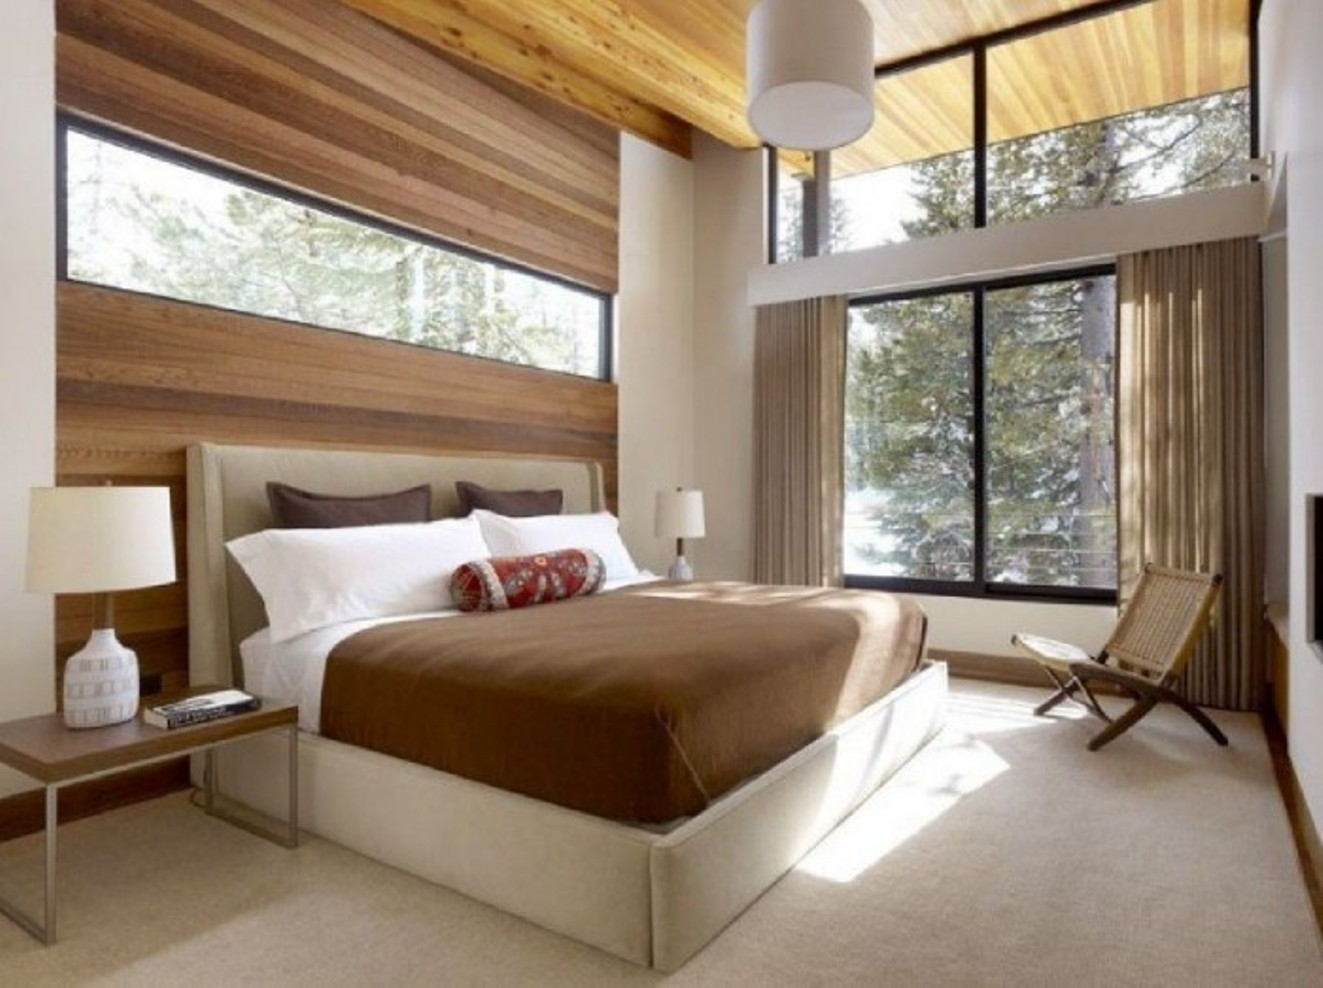 marvellous-feng-shui-bedroom-furniture-new-at-minimalist-gallery-ideas